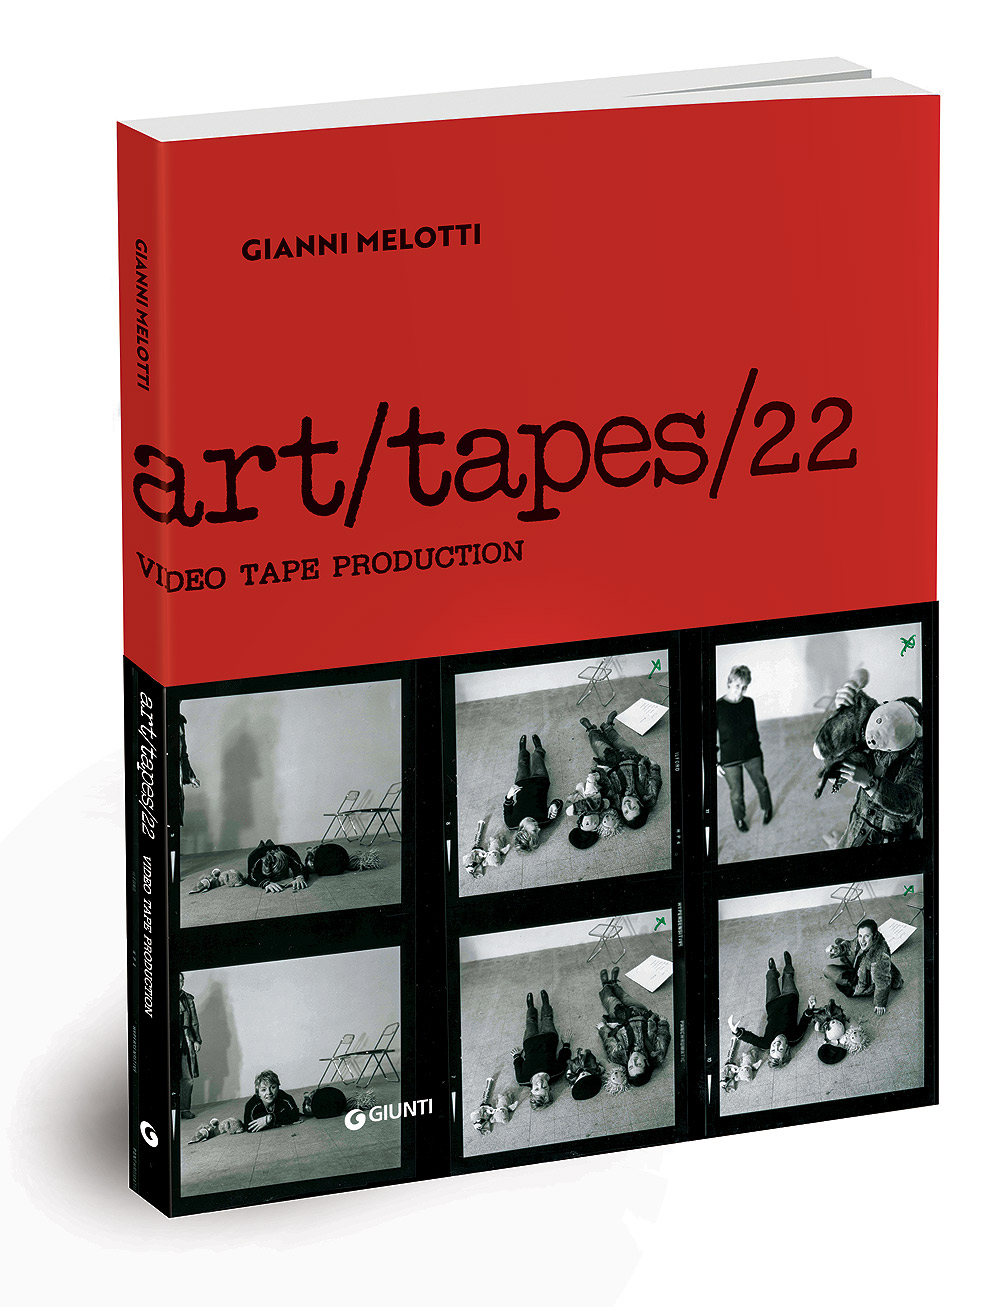 libro giunti_art:tapes:22 video tape production.jpg